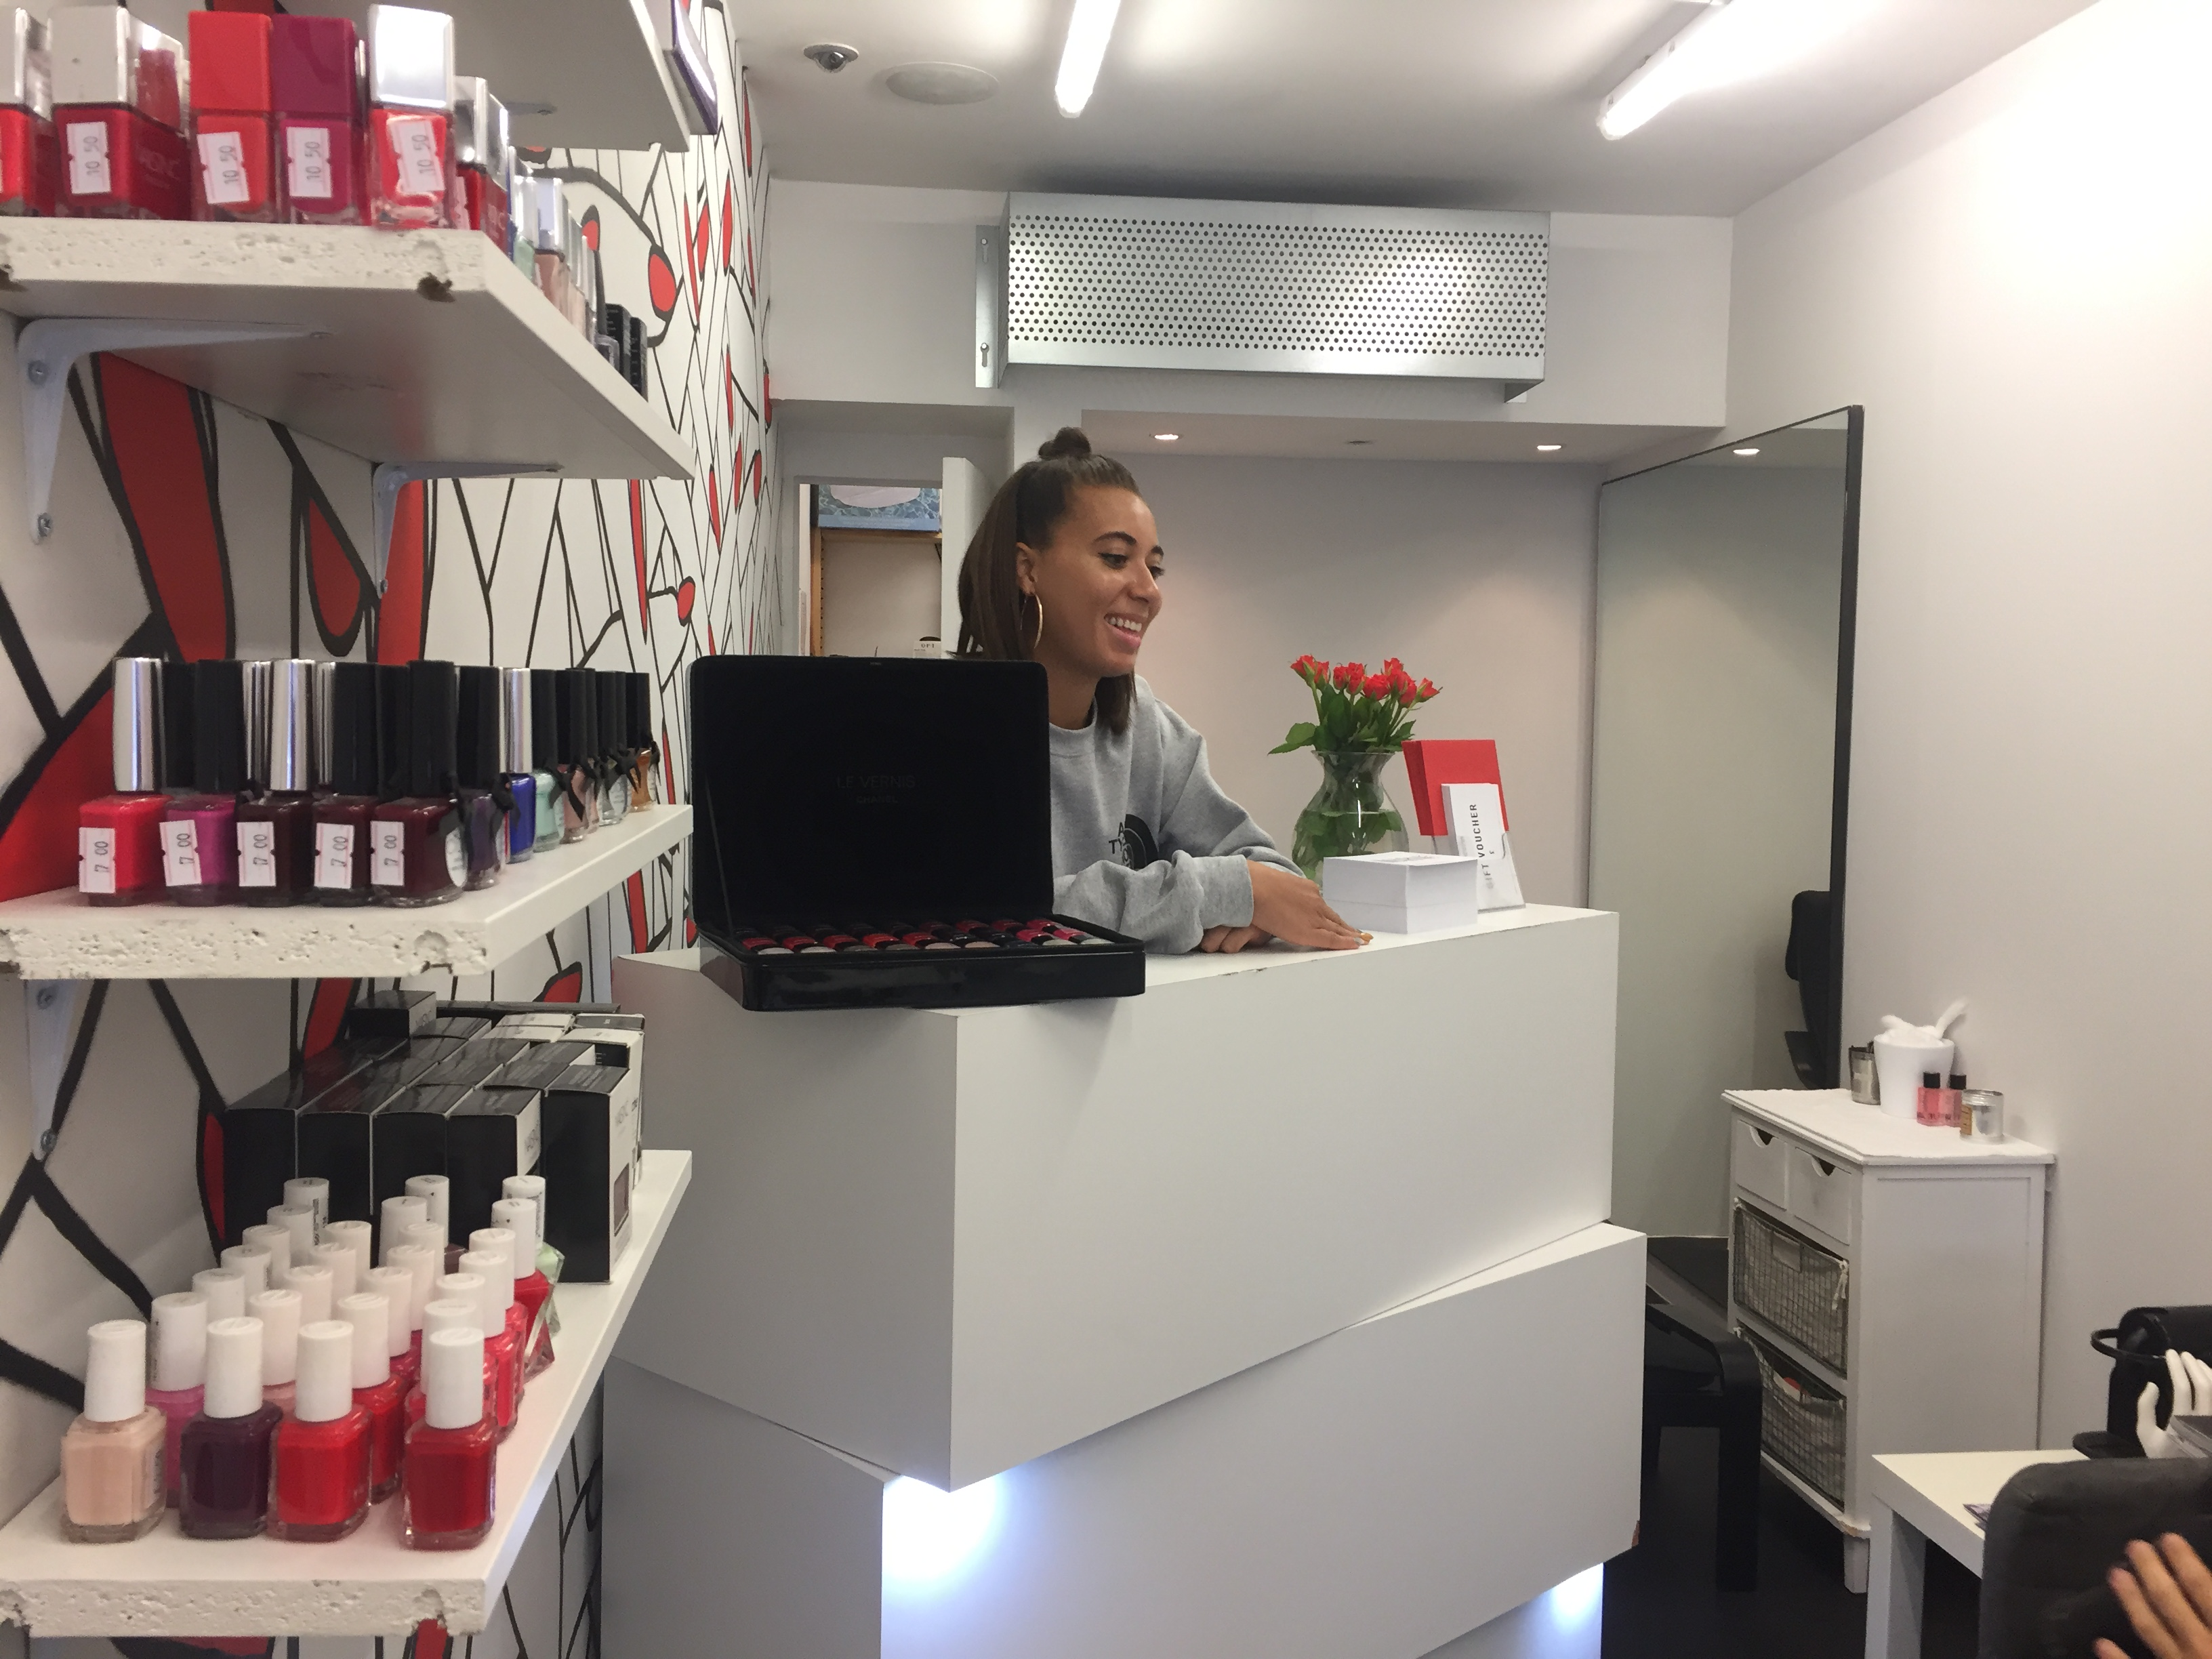 Imarni standing behind the counter in her shop.